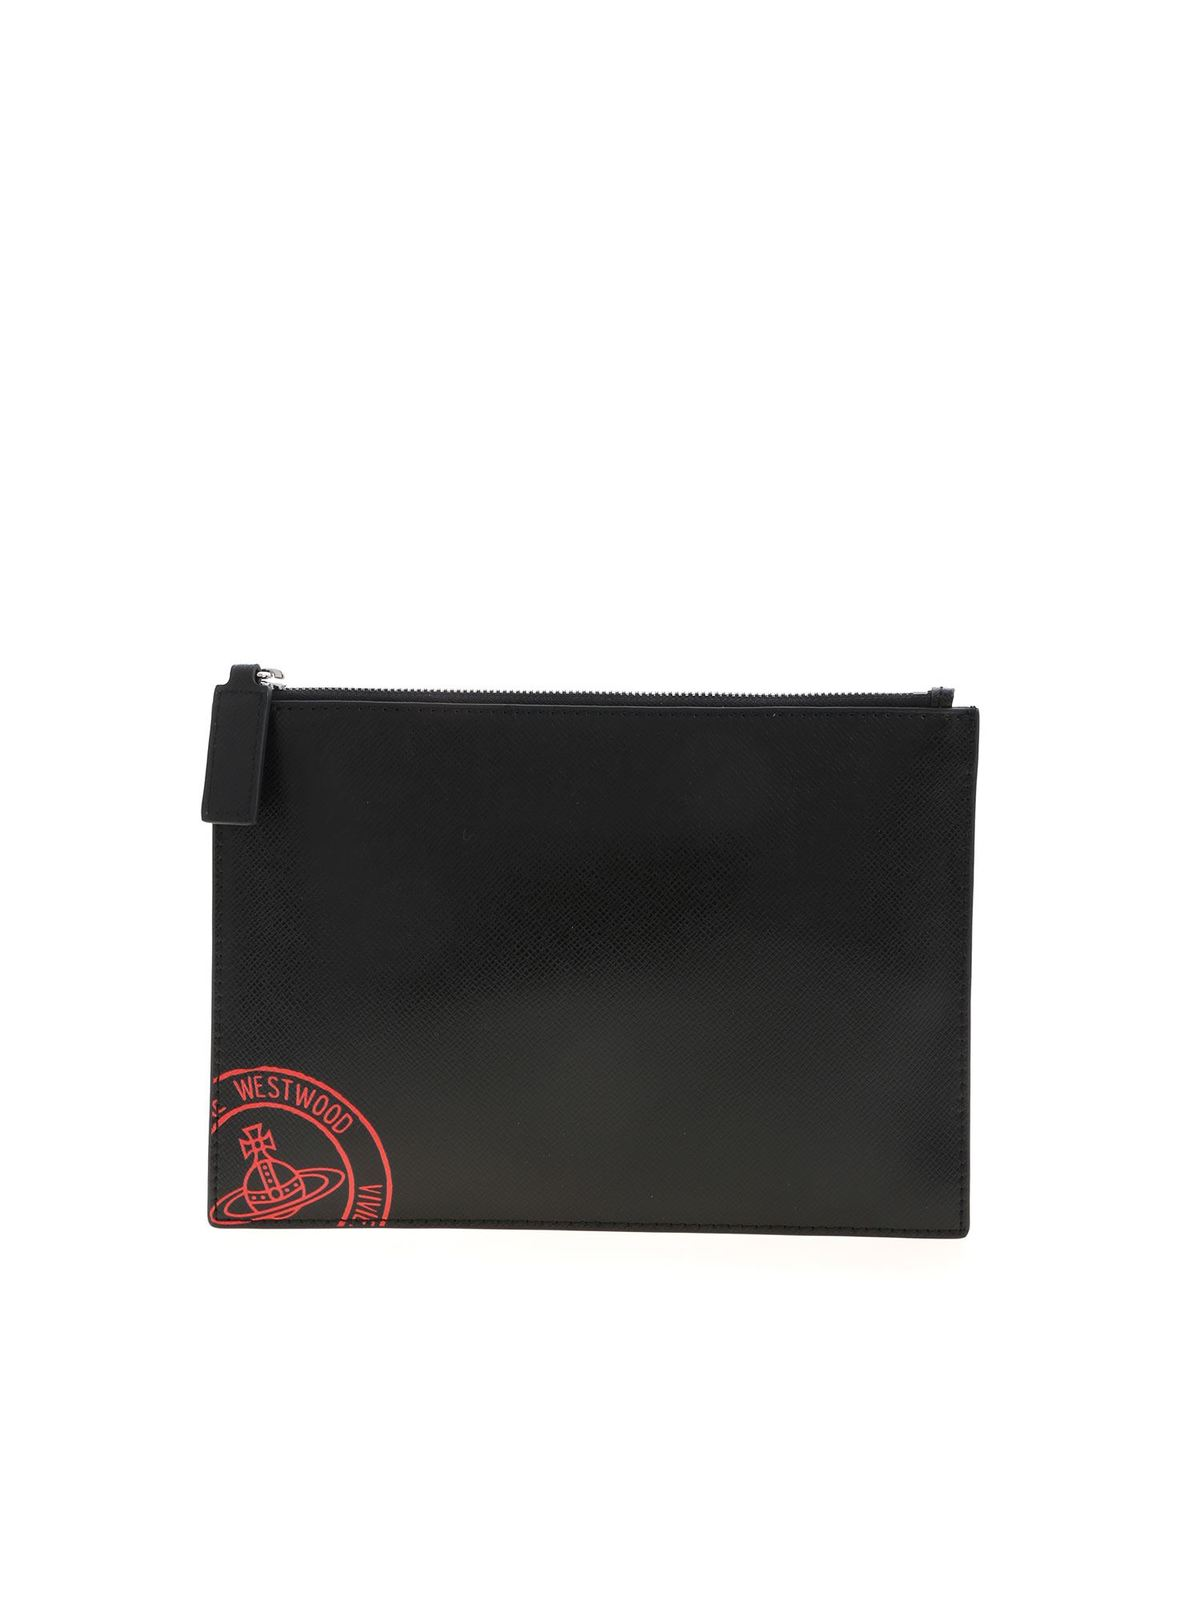 Vivienne Westwood KENT POUCH CLUTCH BAG IN BLACK